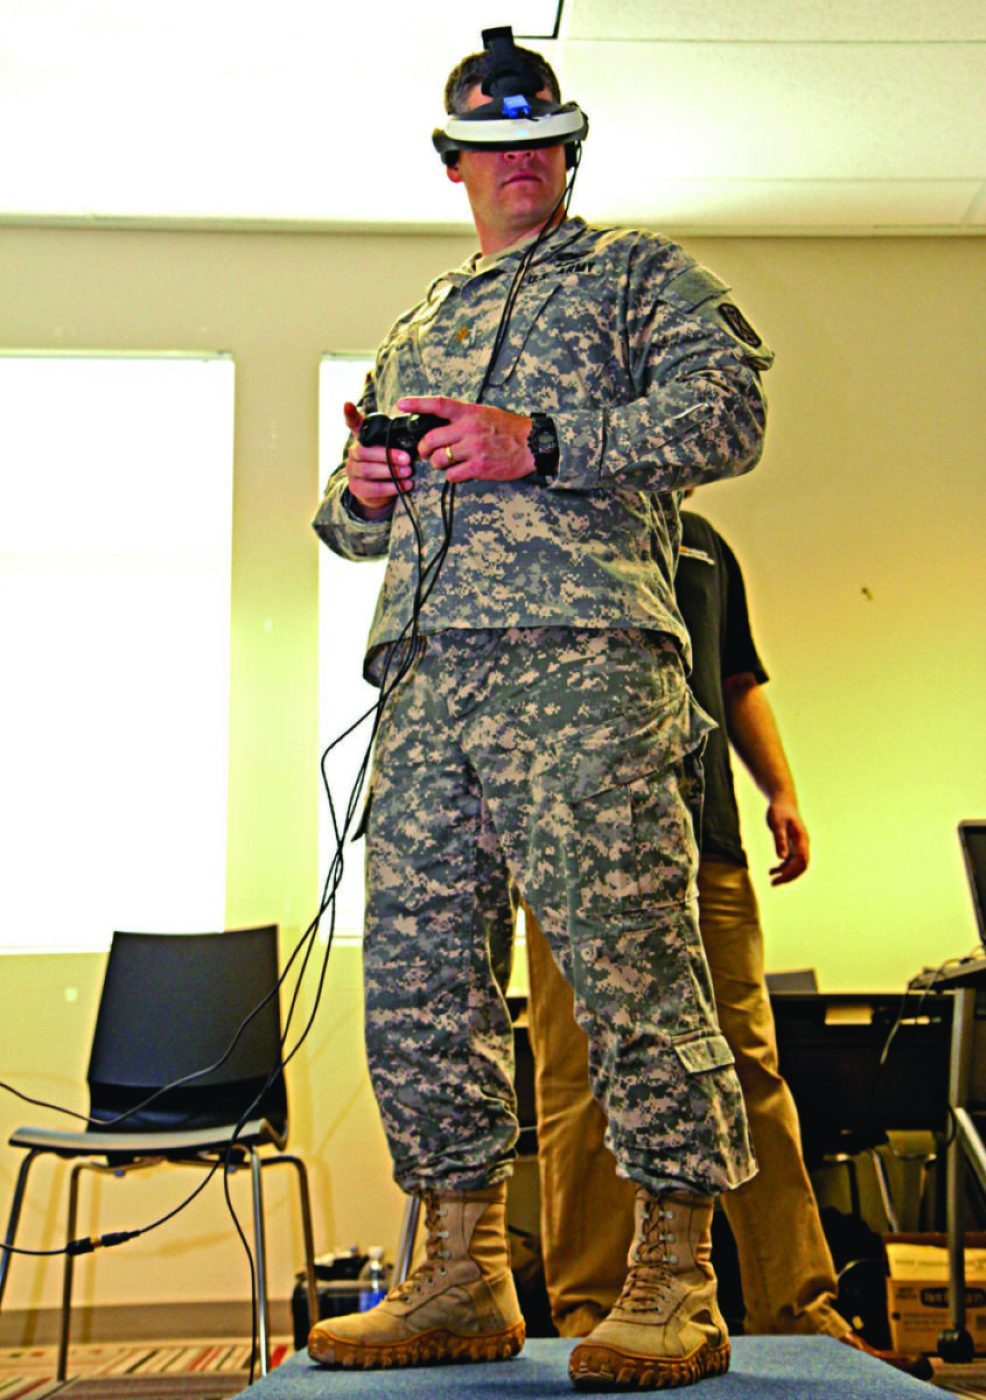 U.S. Army Maj. Ryan McCormack, an operations officer with the 17th Fires Brigade, tests the Bravemind interactive system at Joint Base Lewis-McChord, Washington, April 18, 2013. Bravemind is a virtual training system, designed by developers with the Institute for Creative Technologies, which is used to assess and treat post-traumatic stress disorder.